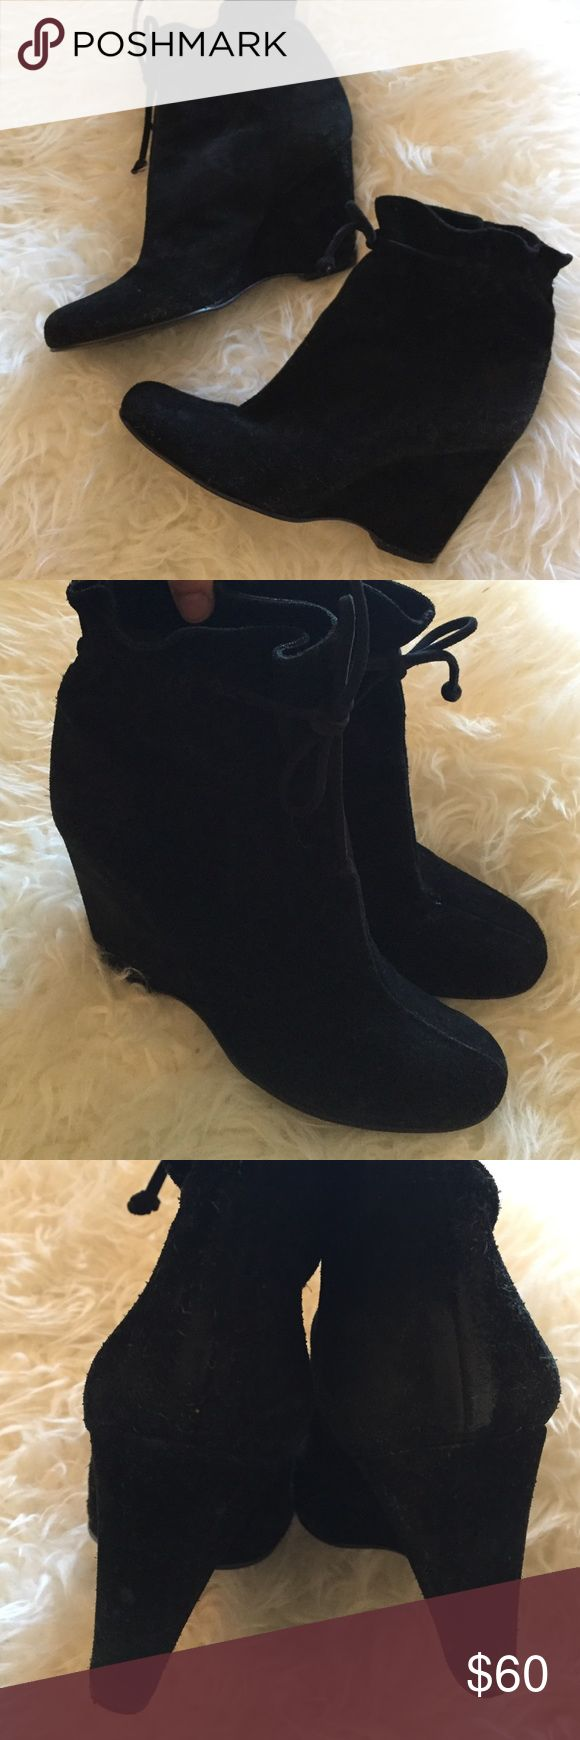 Kate Spade Black Suede Wedge Boots EUC authentic Kate Spade boots.  Note there are a few spots where the leather has worn down around the heels and back of the wedge as pictured.  Not very noticeable since the shoes are black. kate spade Shoes Heeled Boots